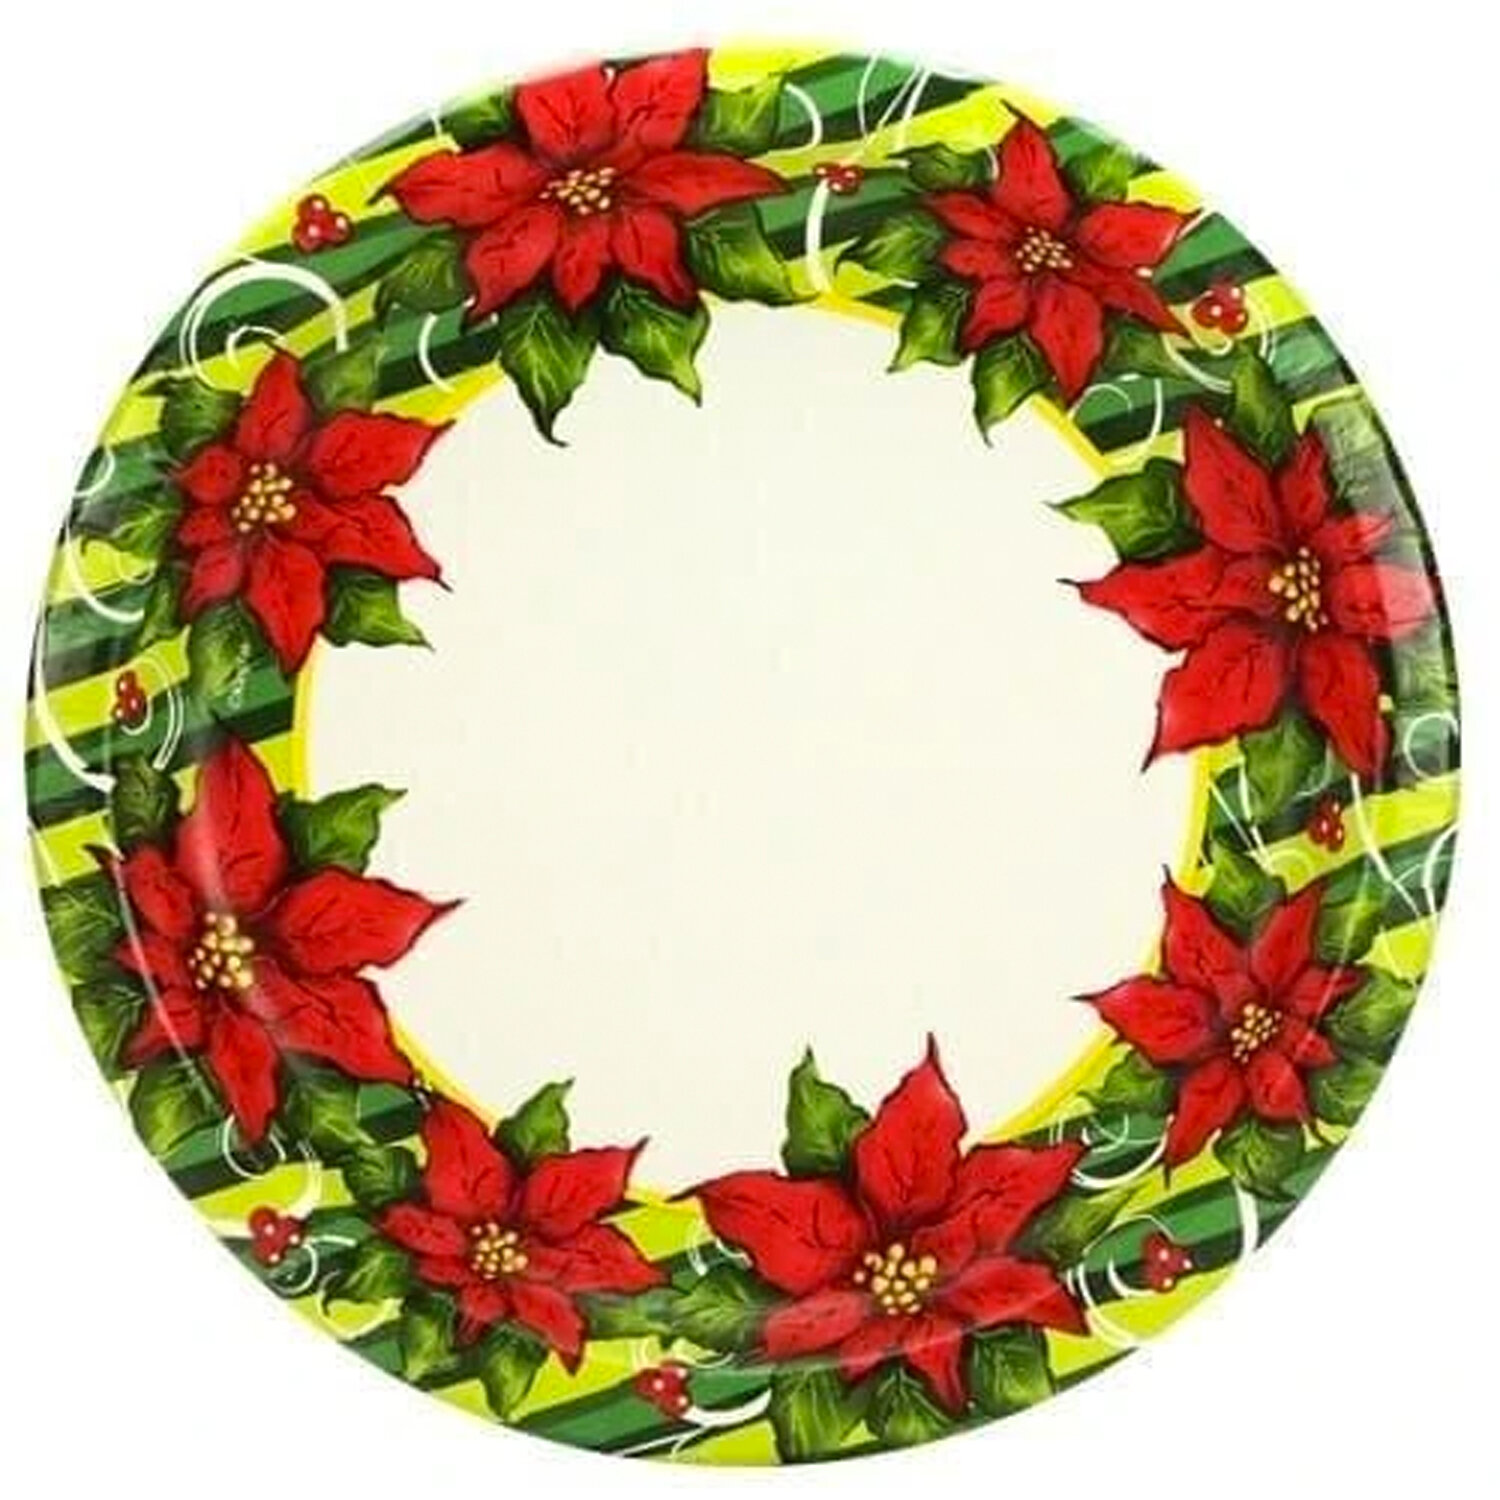 Nicolefantinicollection Poinsettia Wreath Premium Heavy Weight Paper Disposable Dinner Plate Wayfair